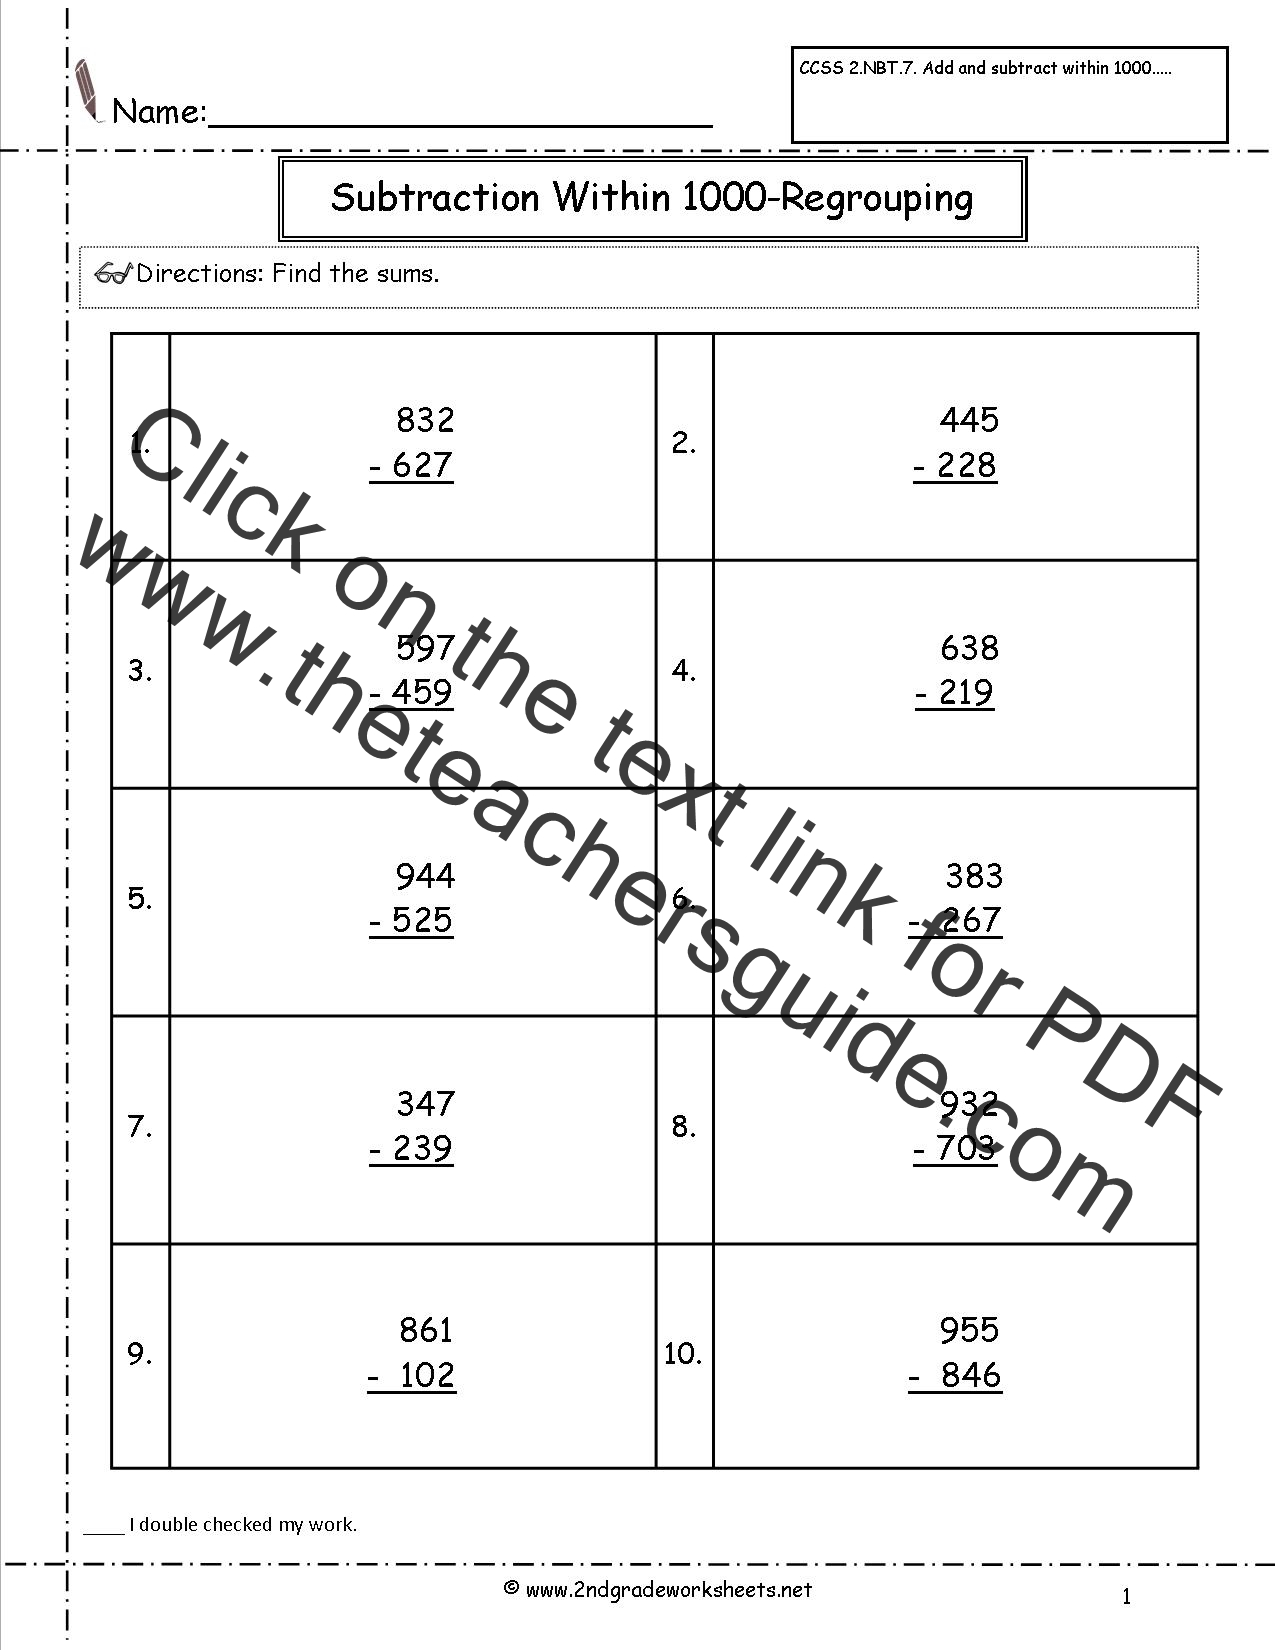 CCSS 2NBT7 Worksheets Addition and Subtraction Within 1000 – Adding and Subtracting Tens Worksheets